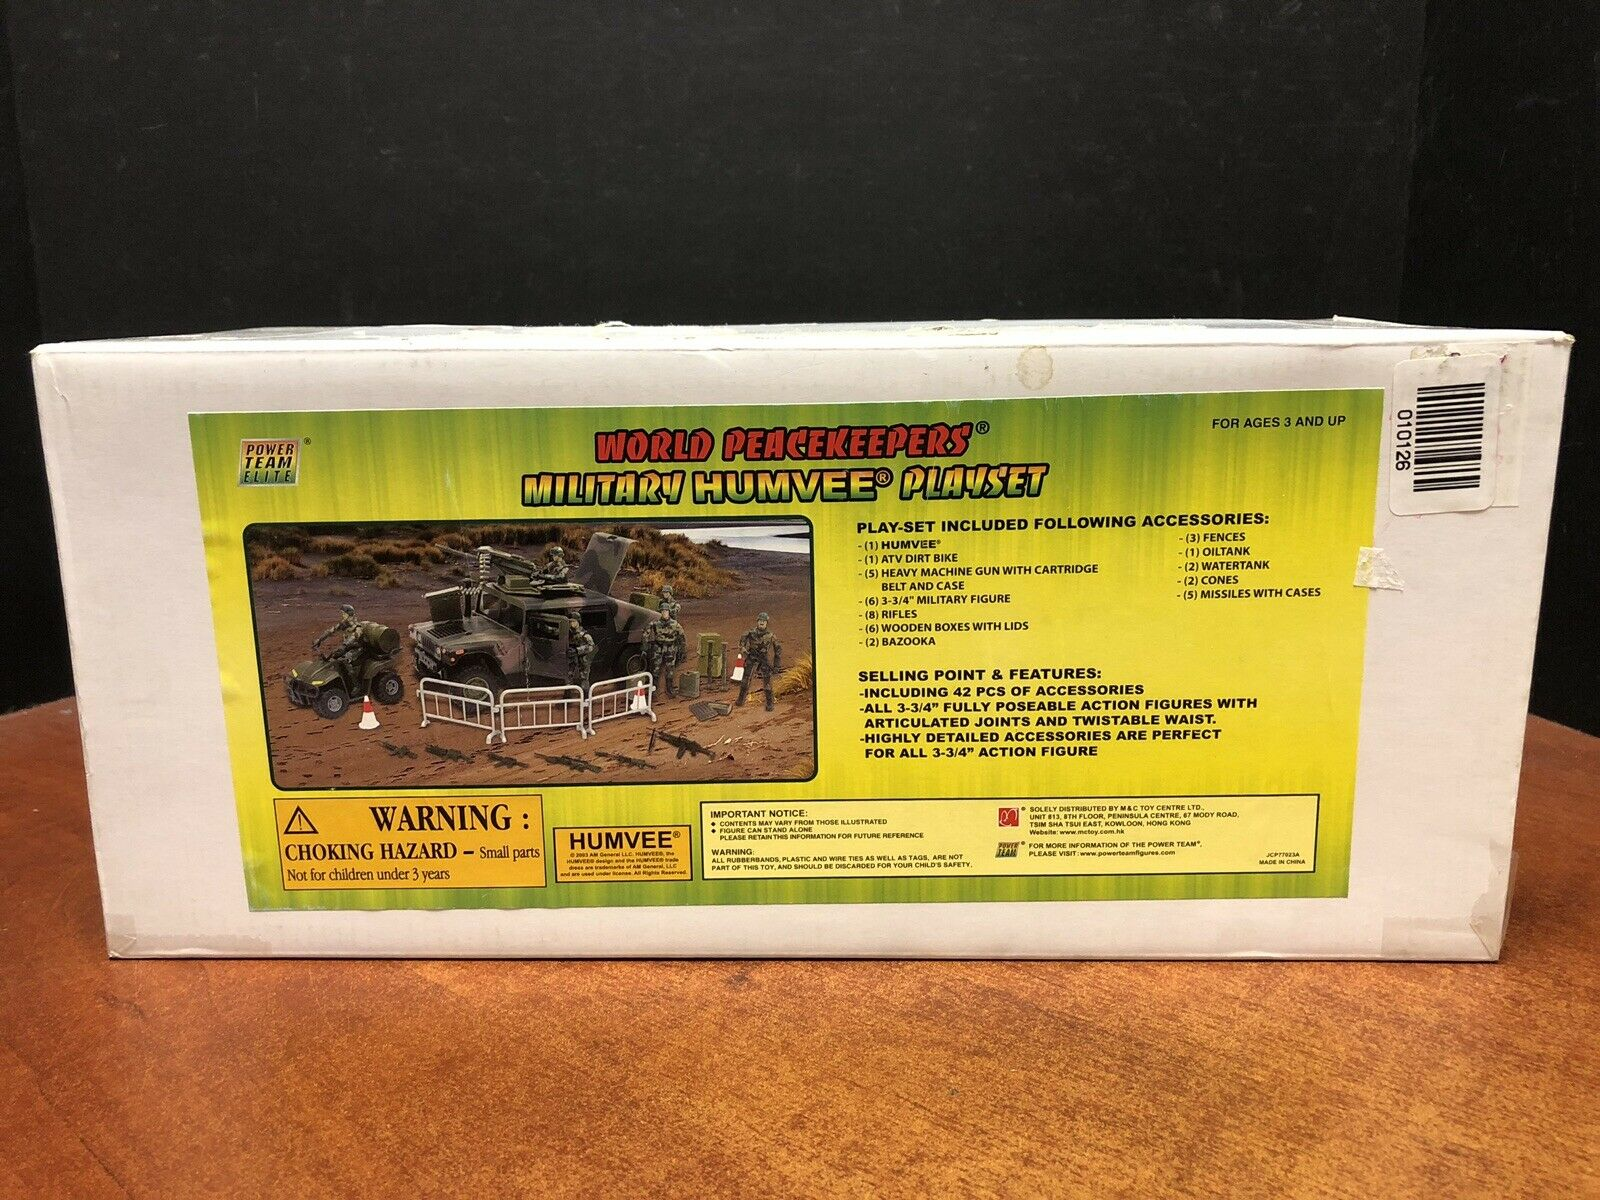 World Peacekeepers Military Humvee Playset MISB Dela1578